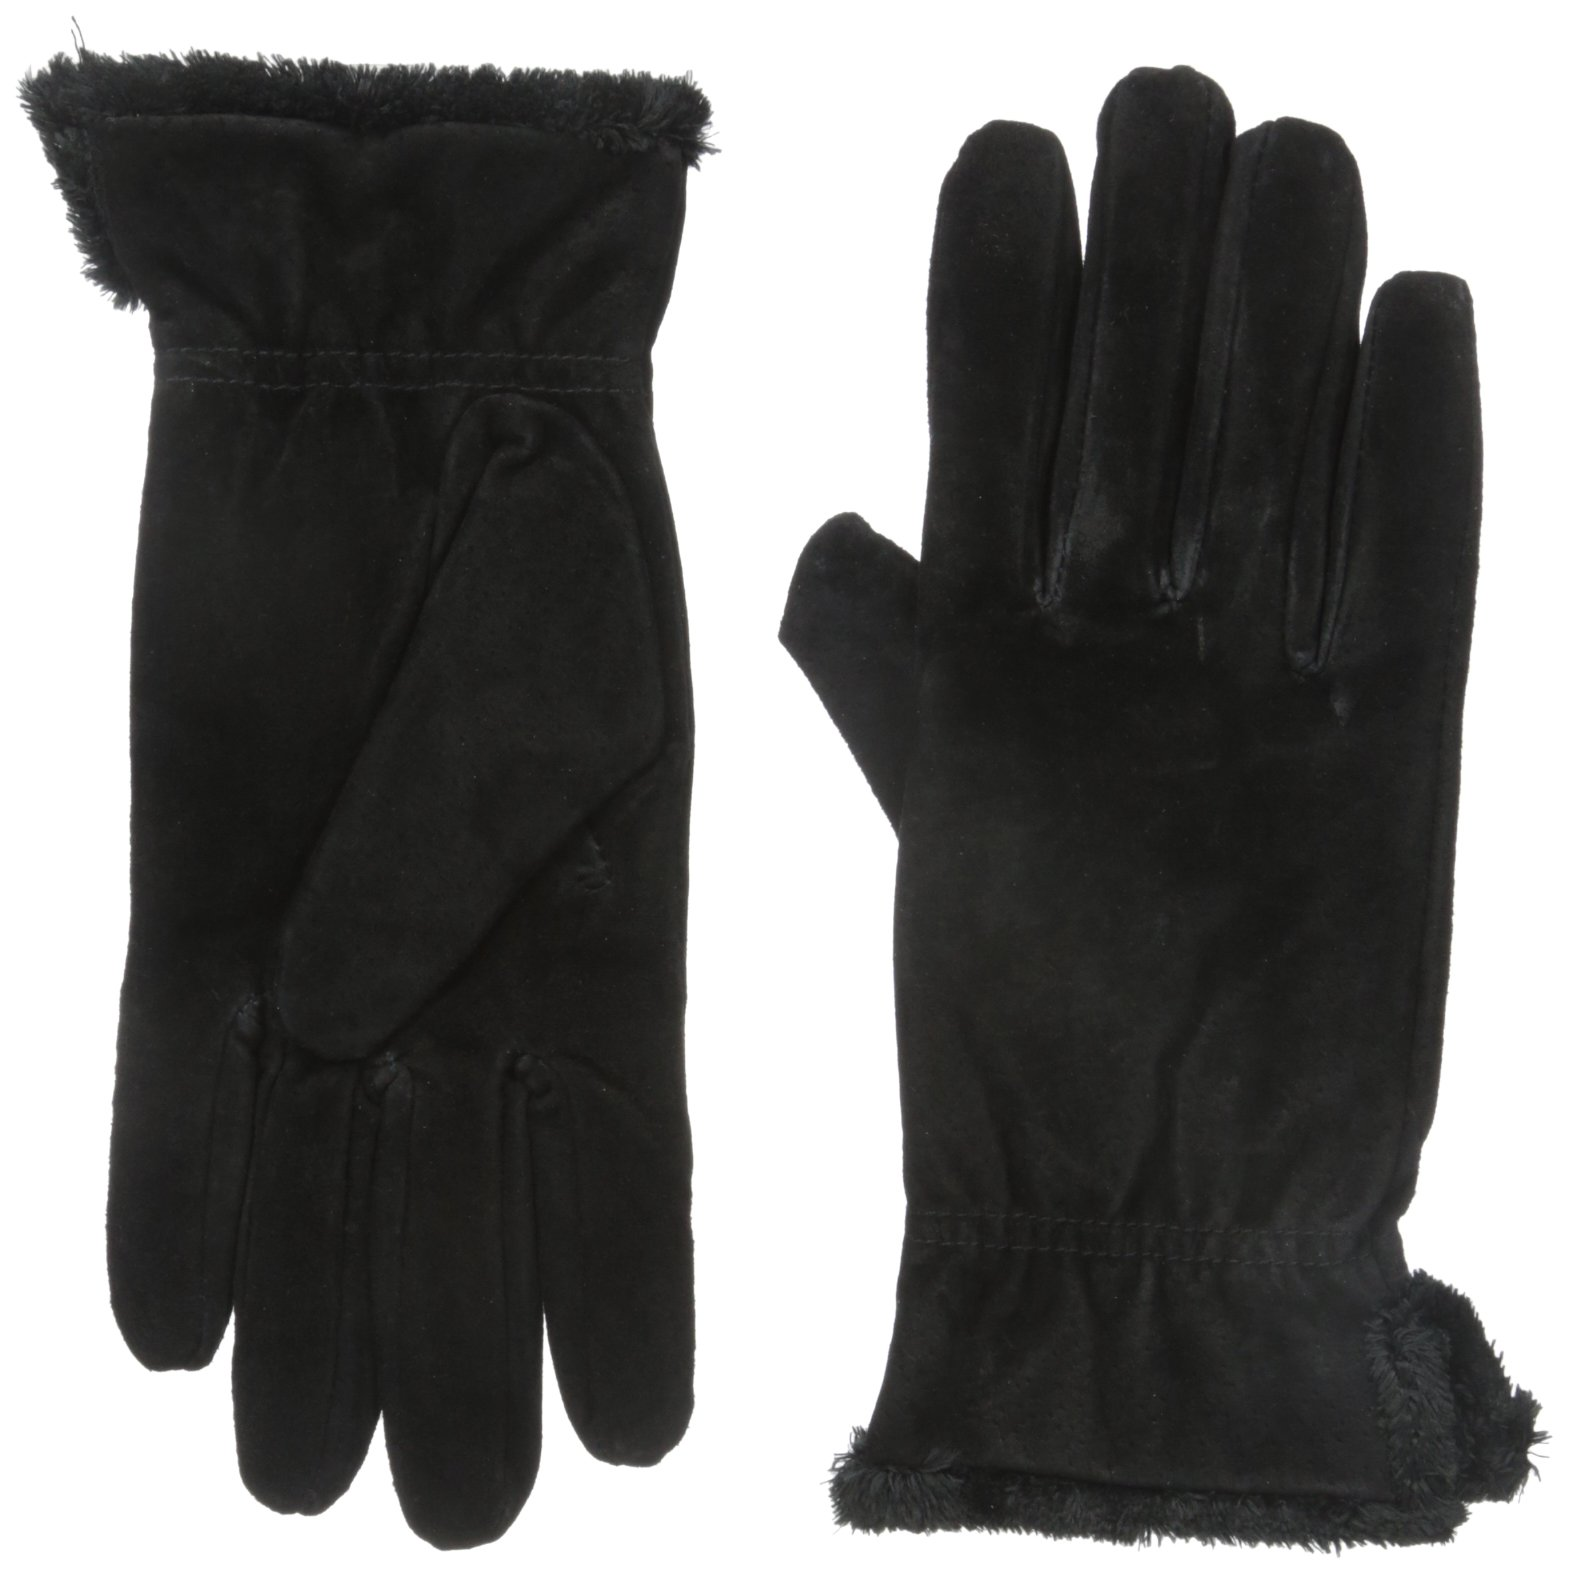 isotoner Women's Genuine Suede Cold Weather Gloves with Warm, Soft Lining